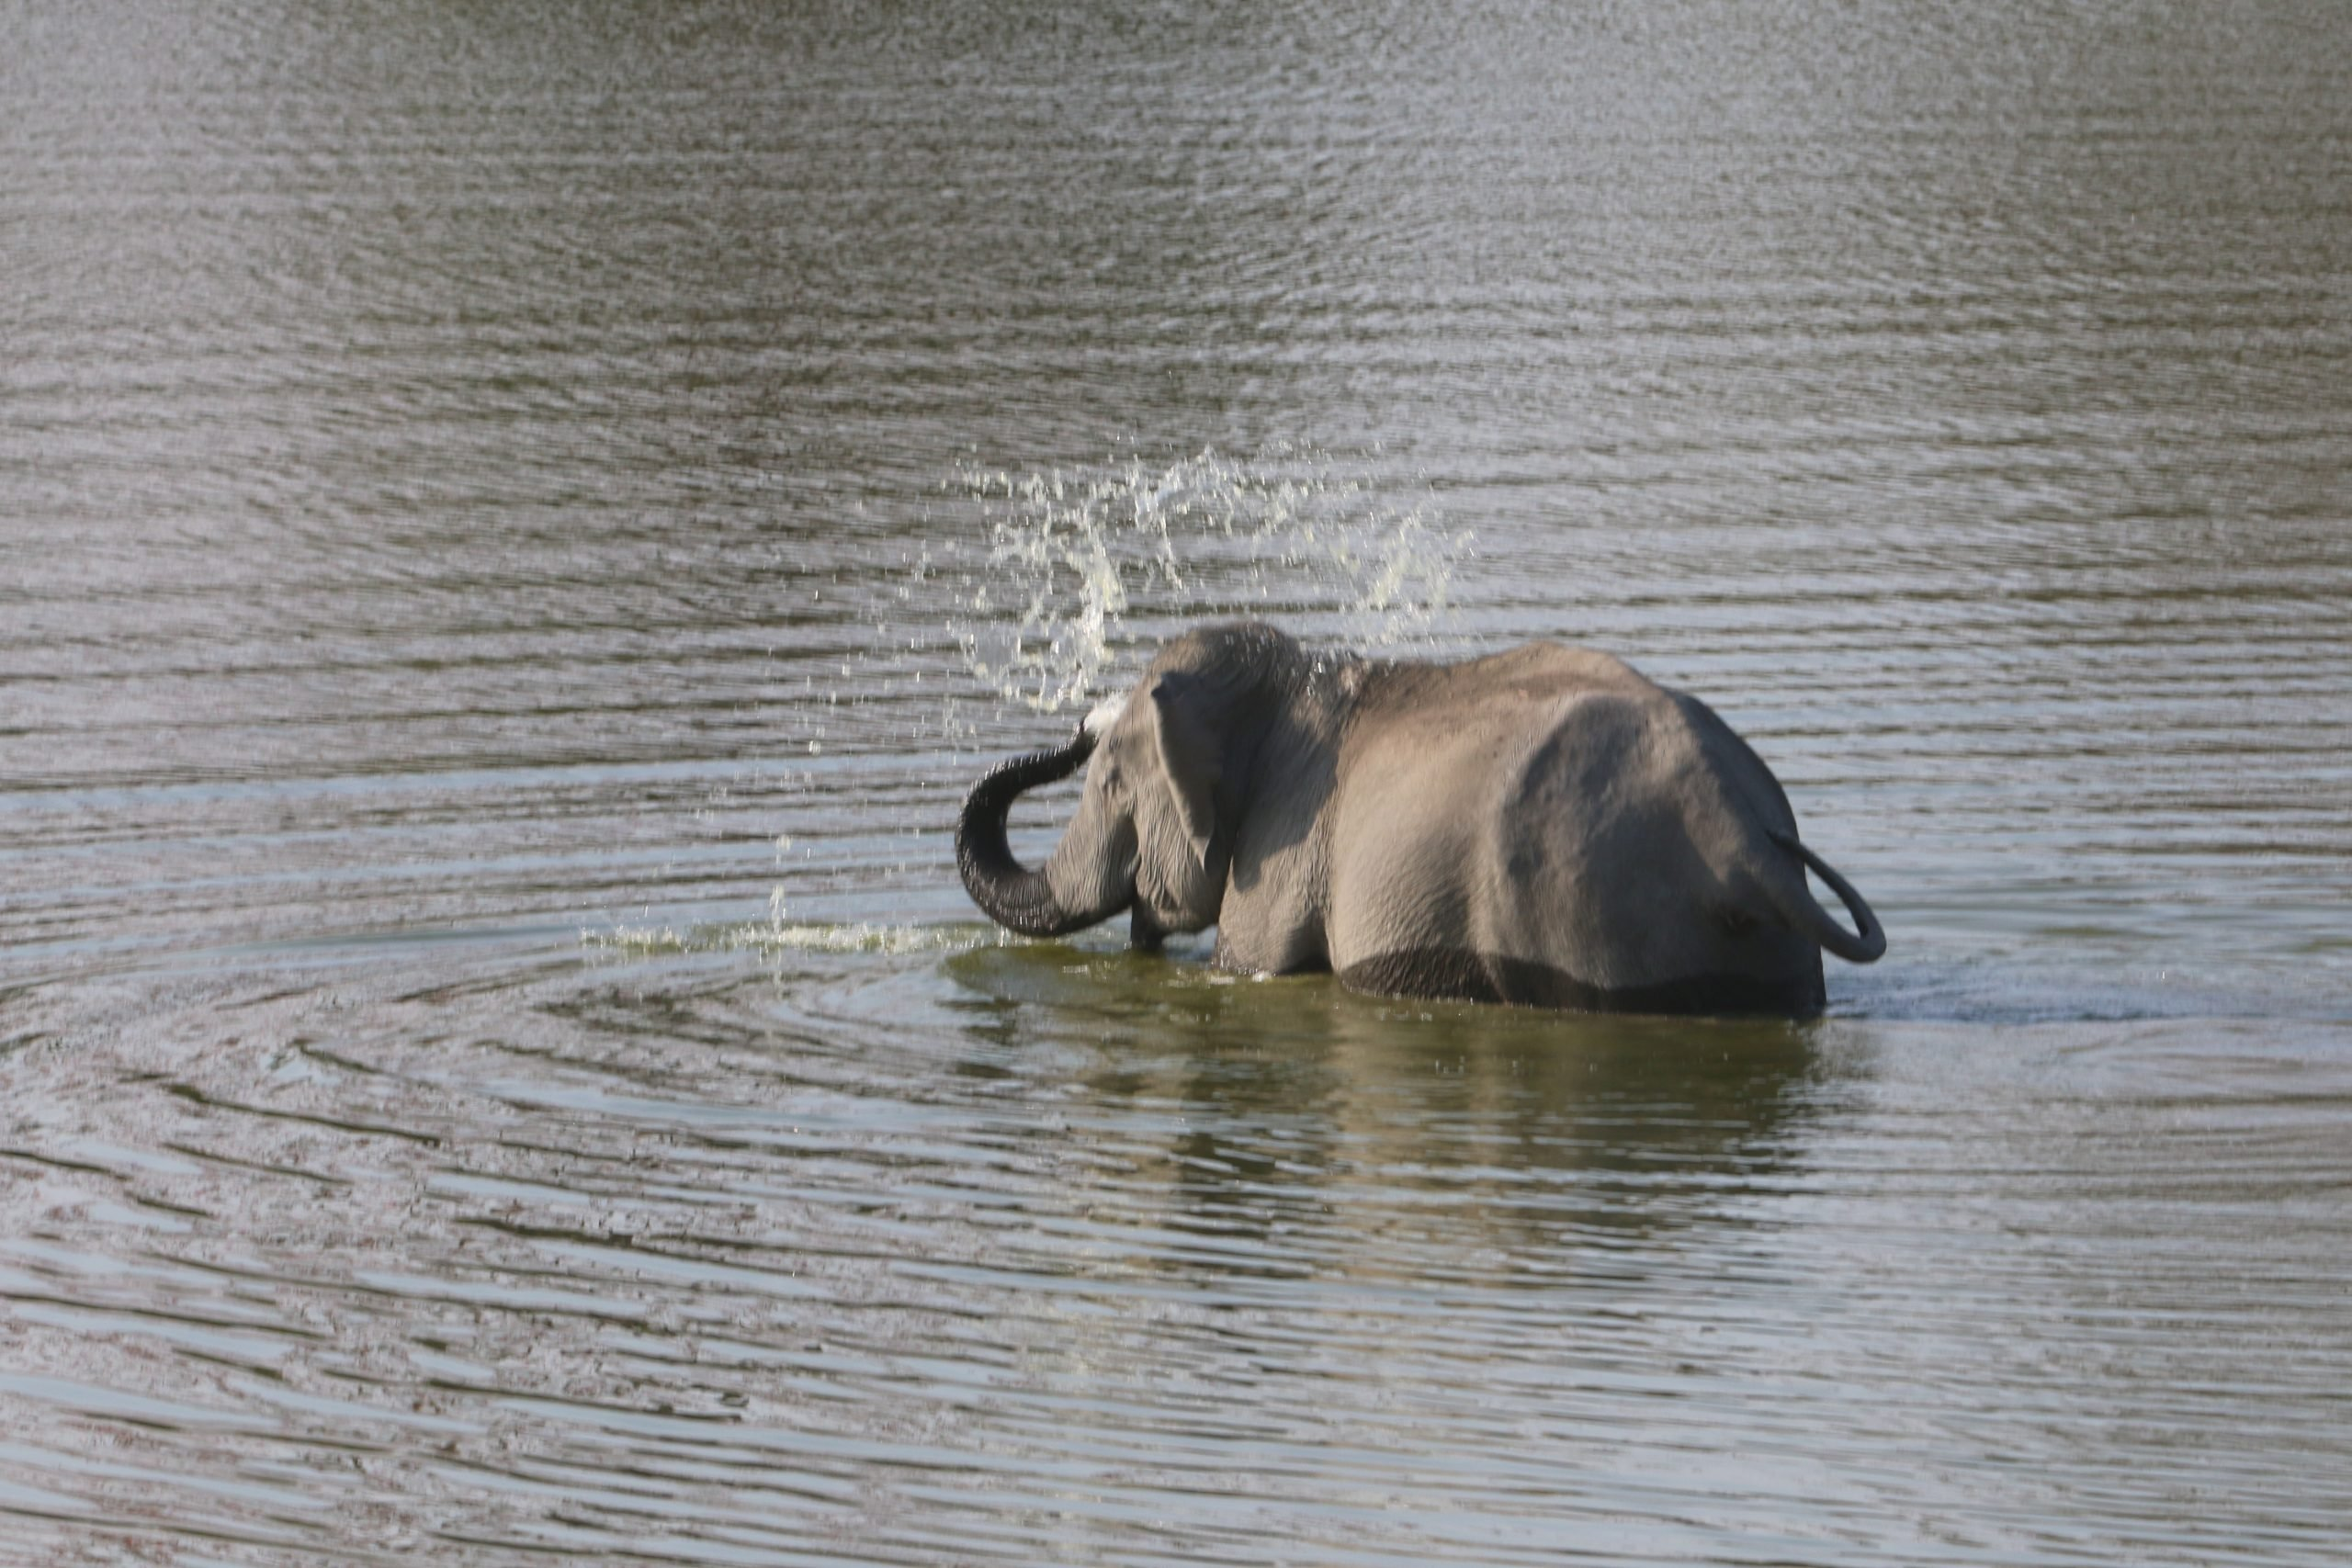 An elephant in river